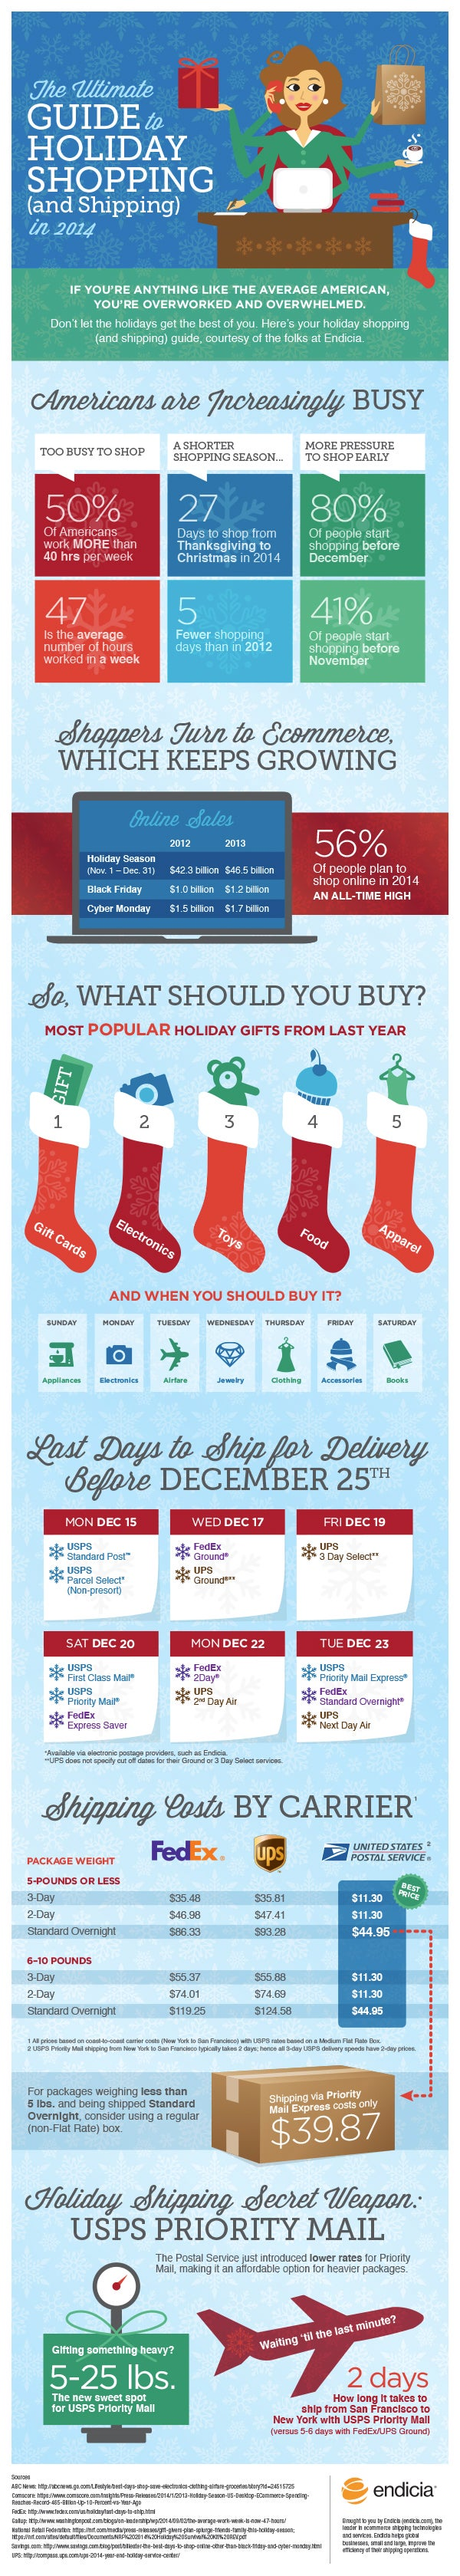 An Entrepreneur's Guide to Shopping and Shipping This Holiday Season (Infographic)